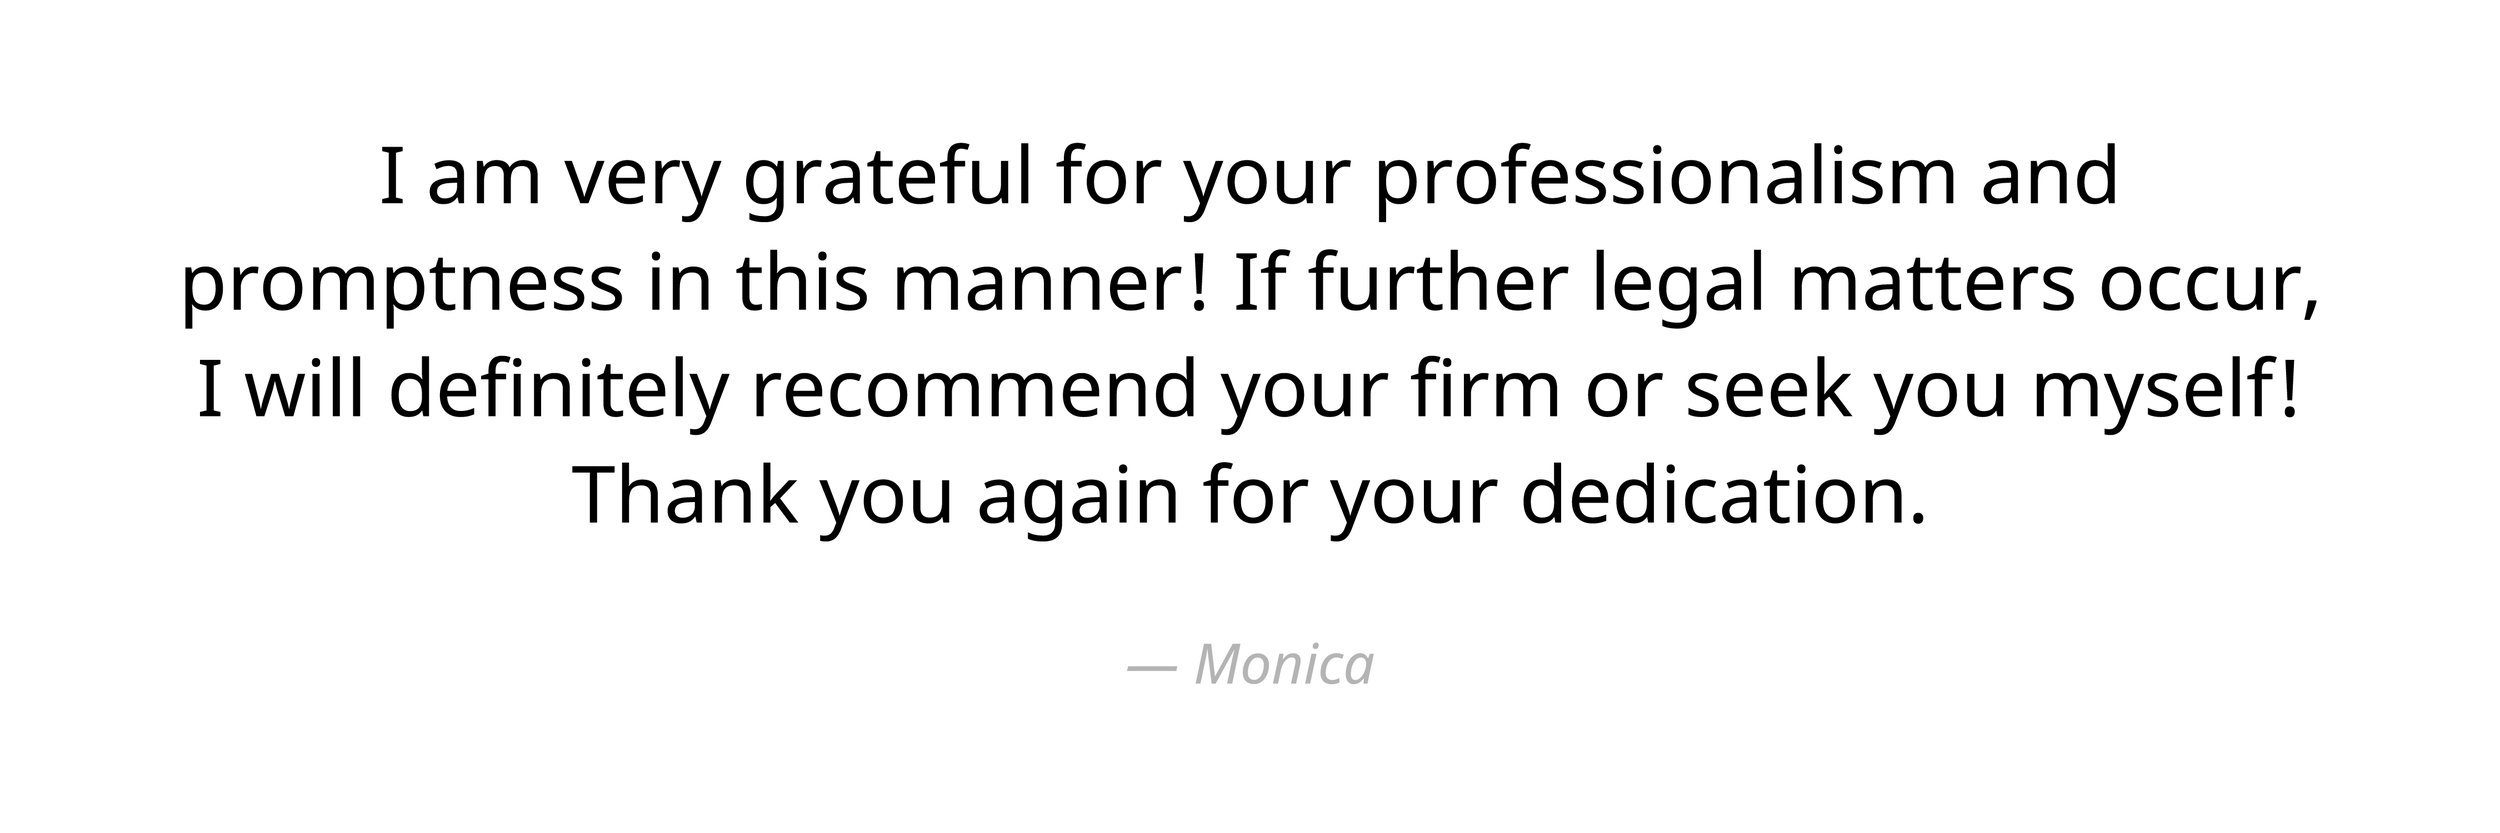 Testimonals_Home_monica-01.jpg